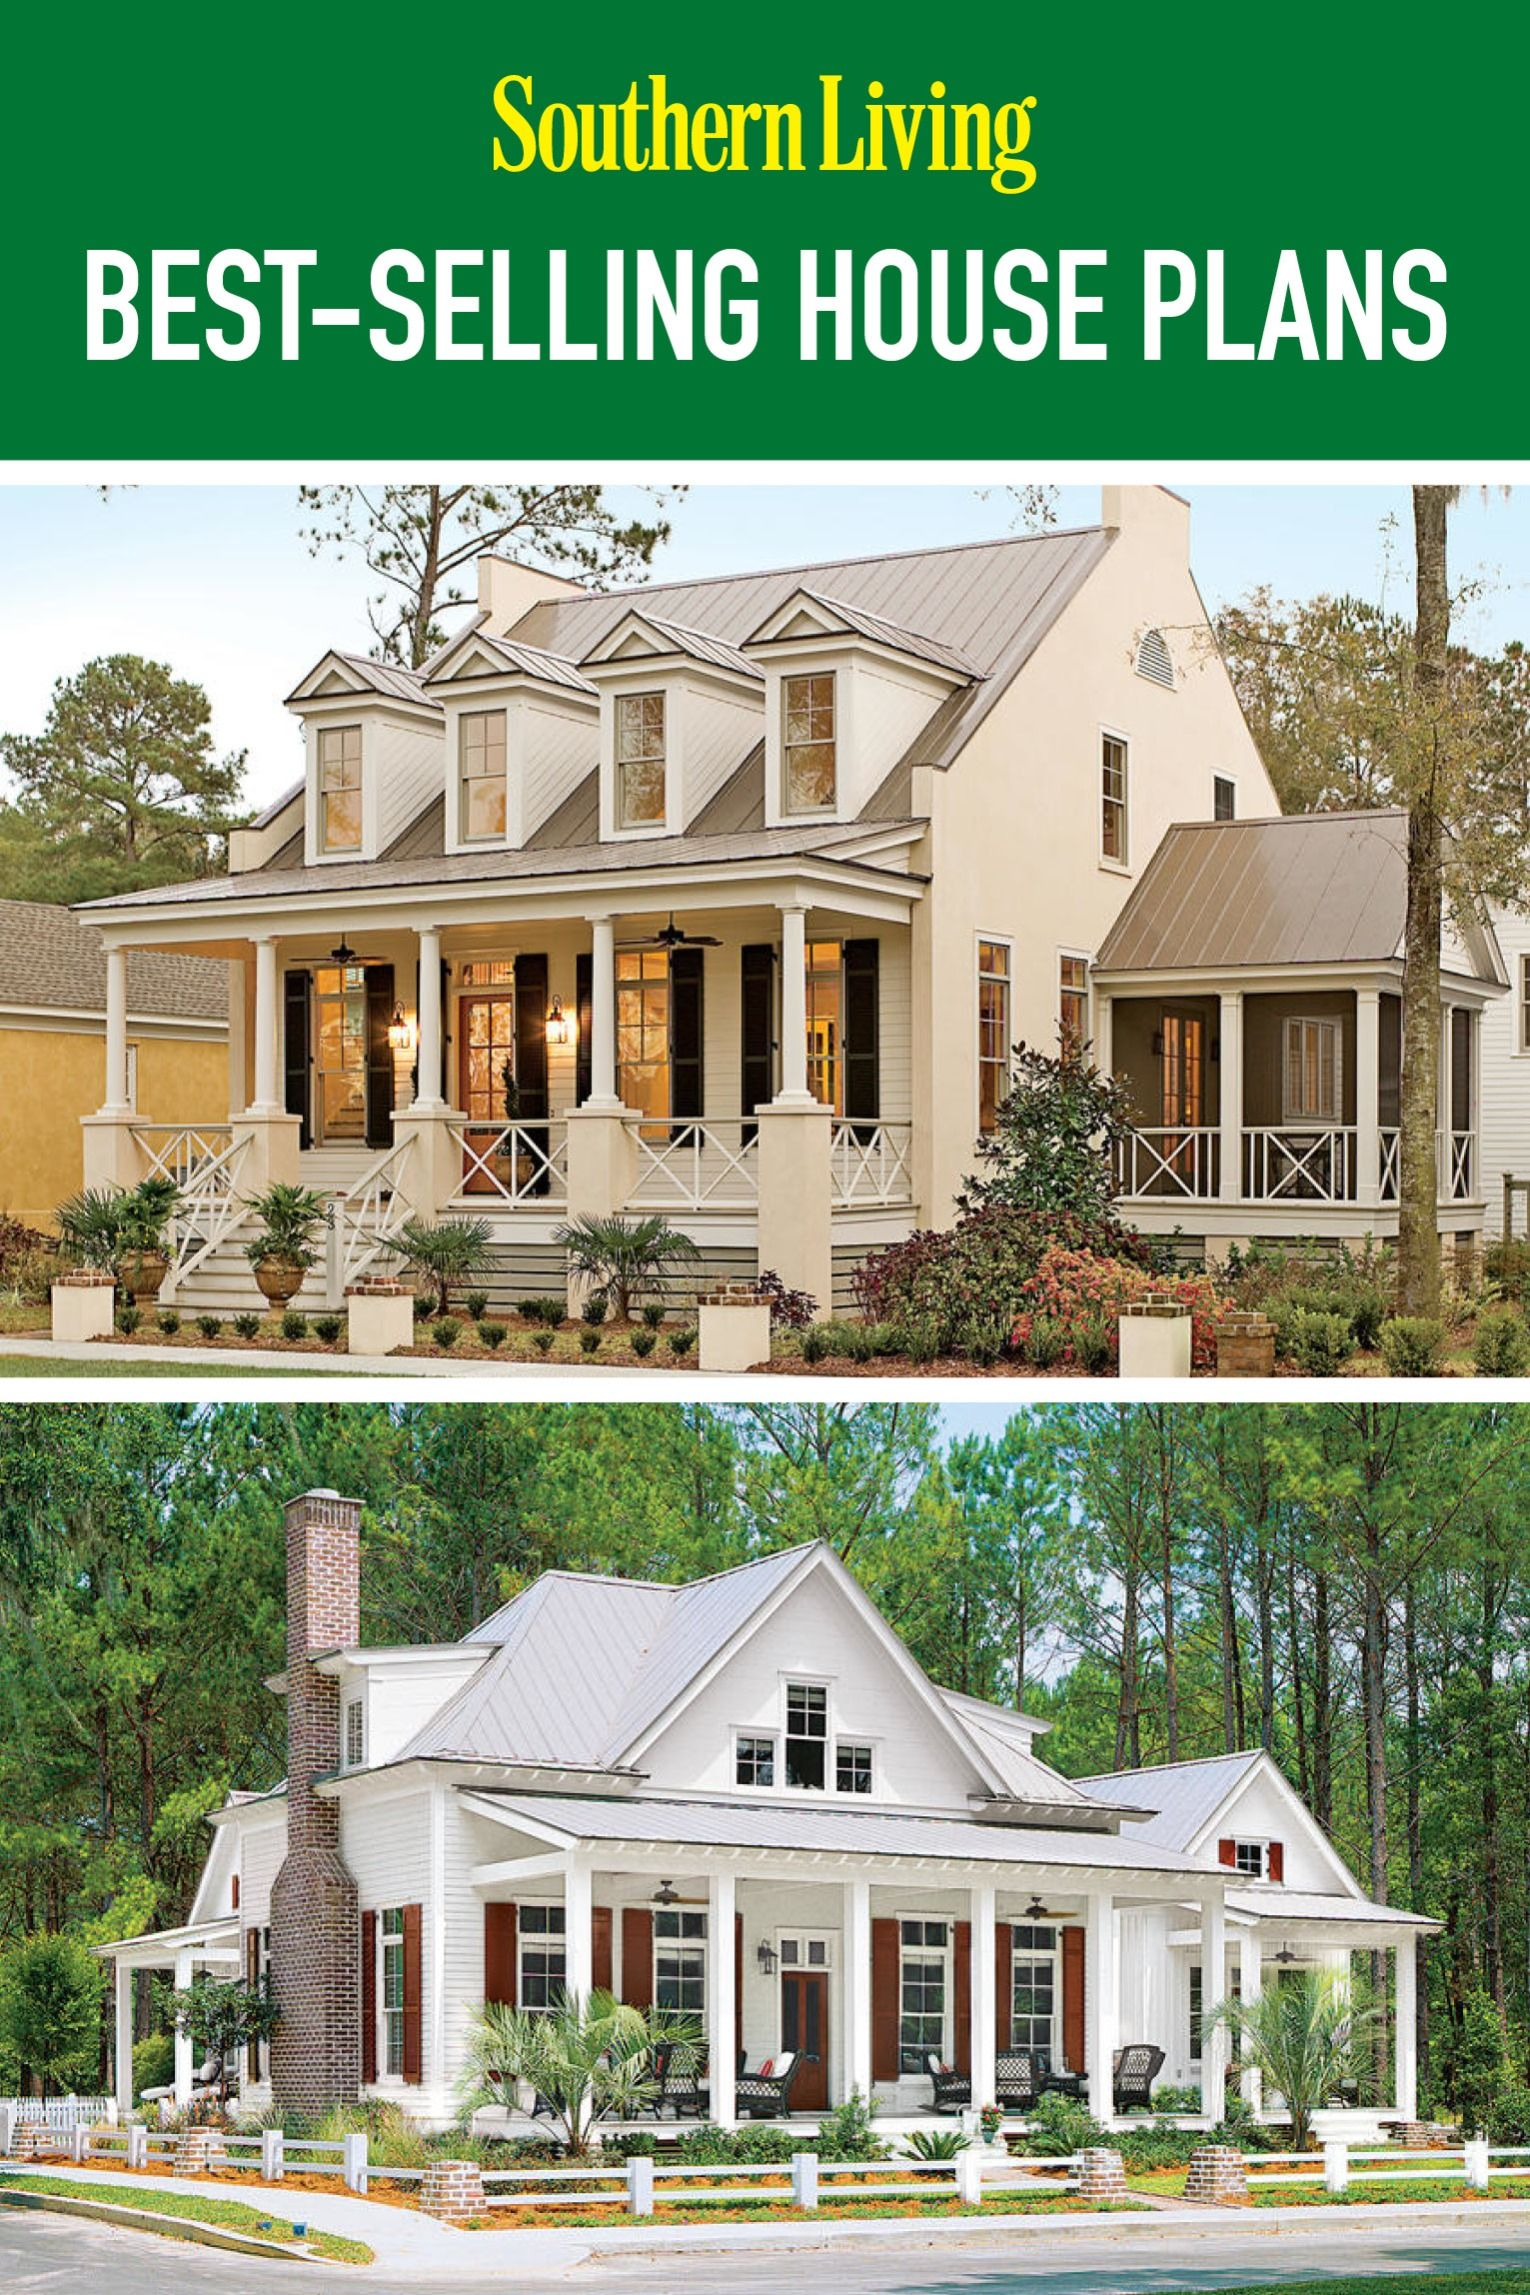 Top 12 Bestselling House Plans